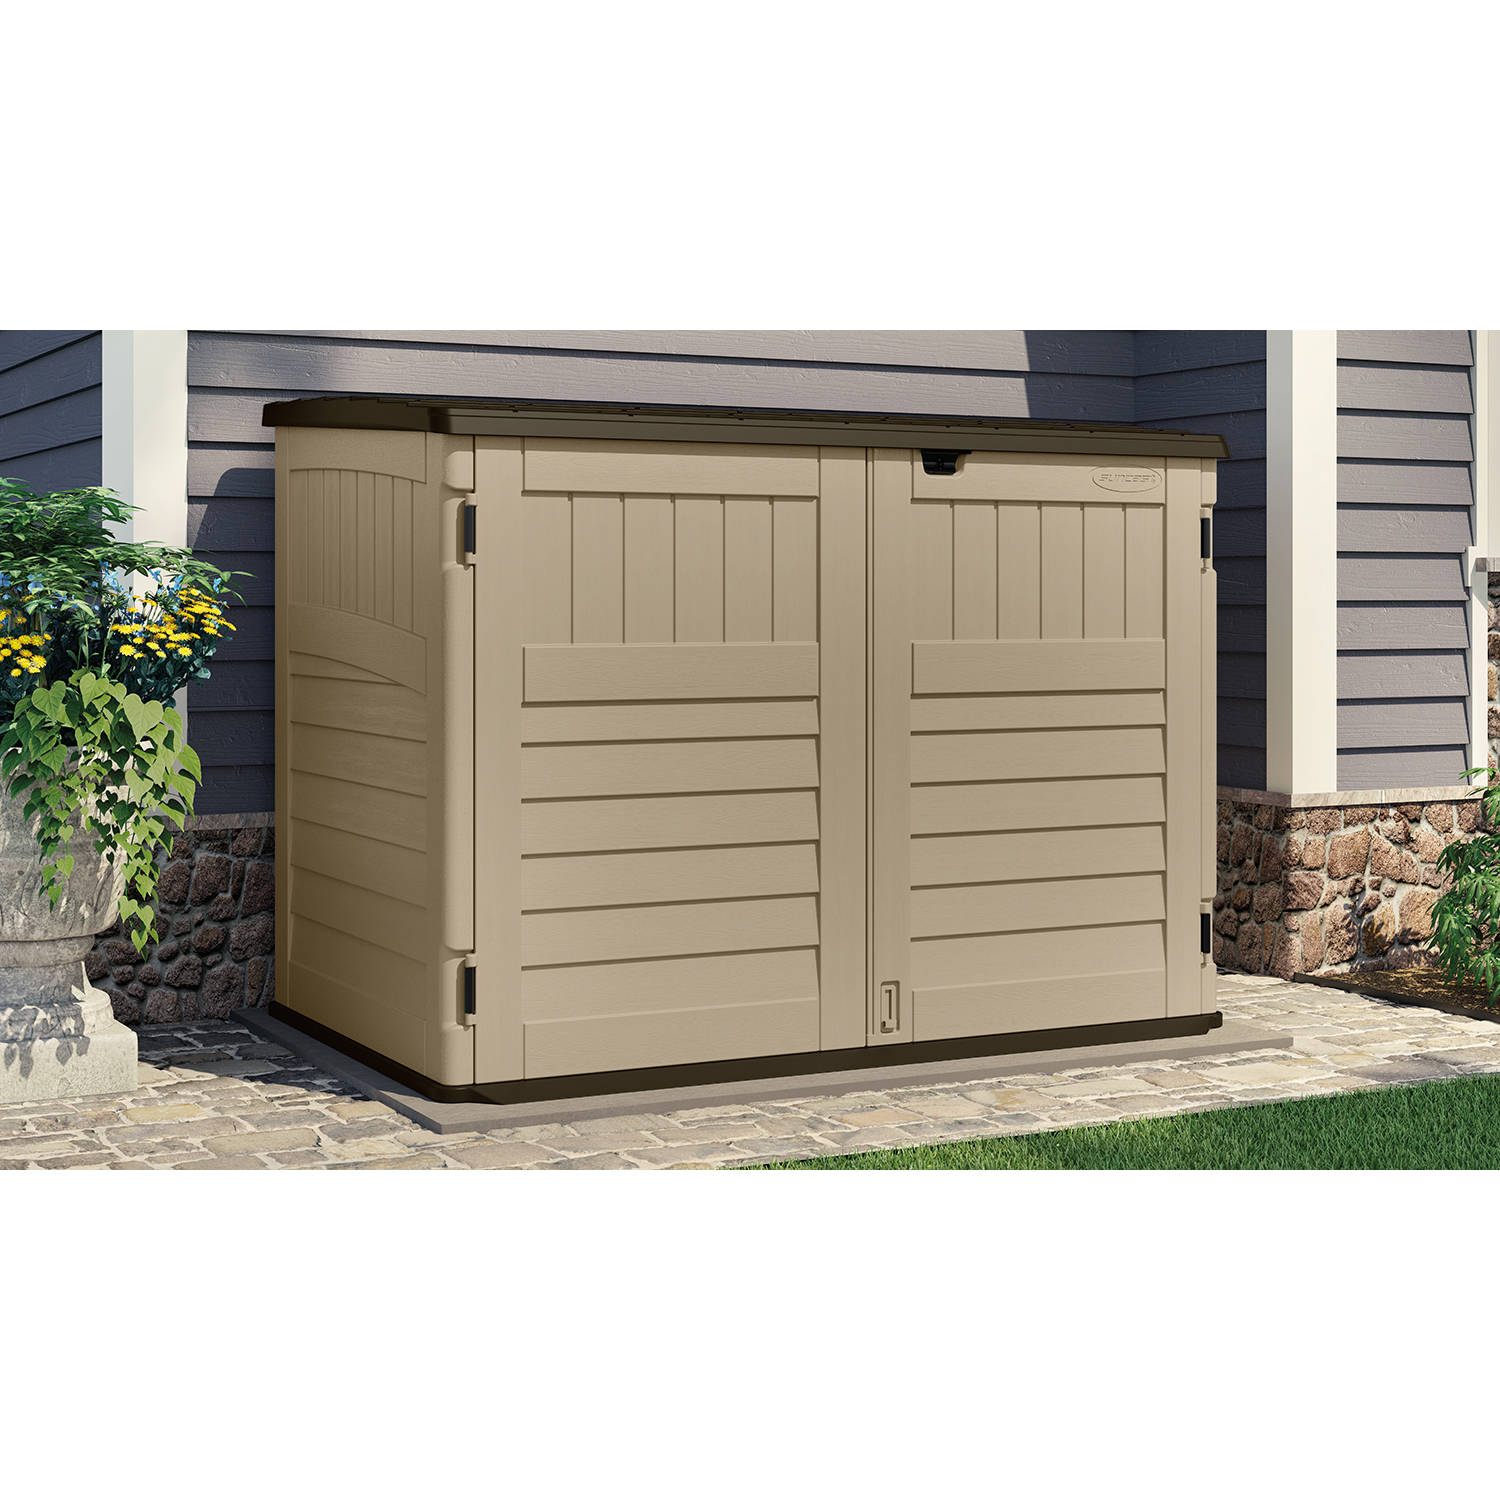 Superior Suncast Toter Trash Can Shed, Sand